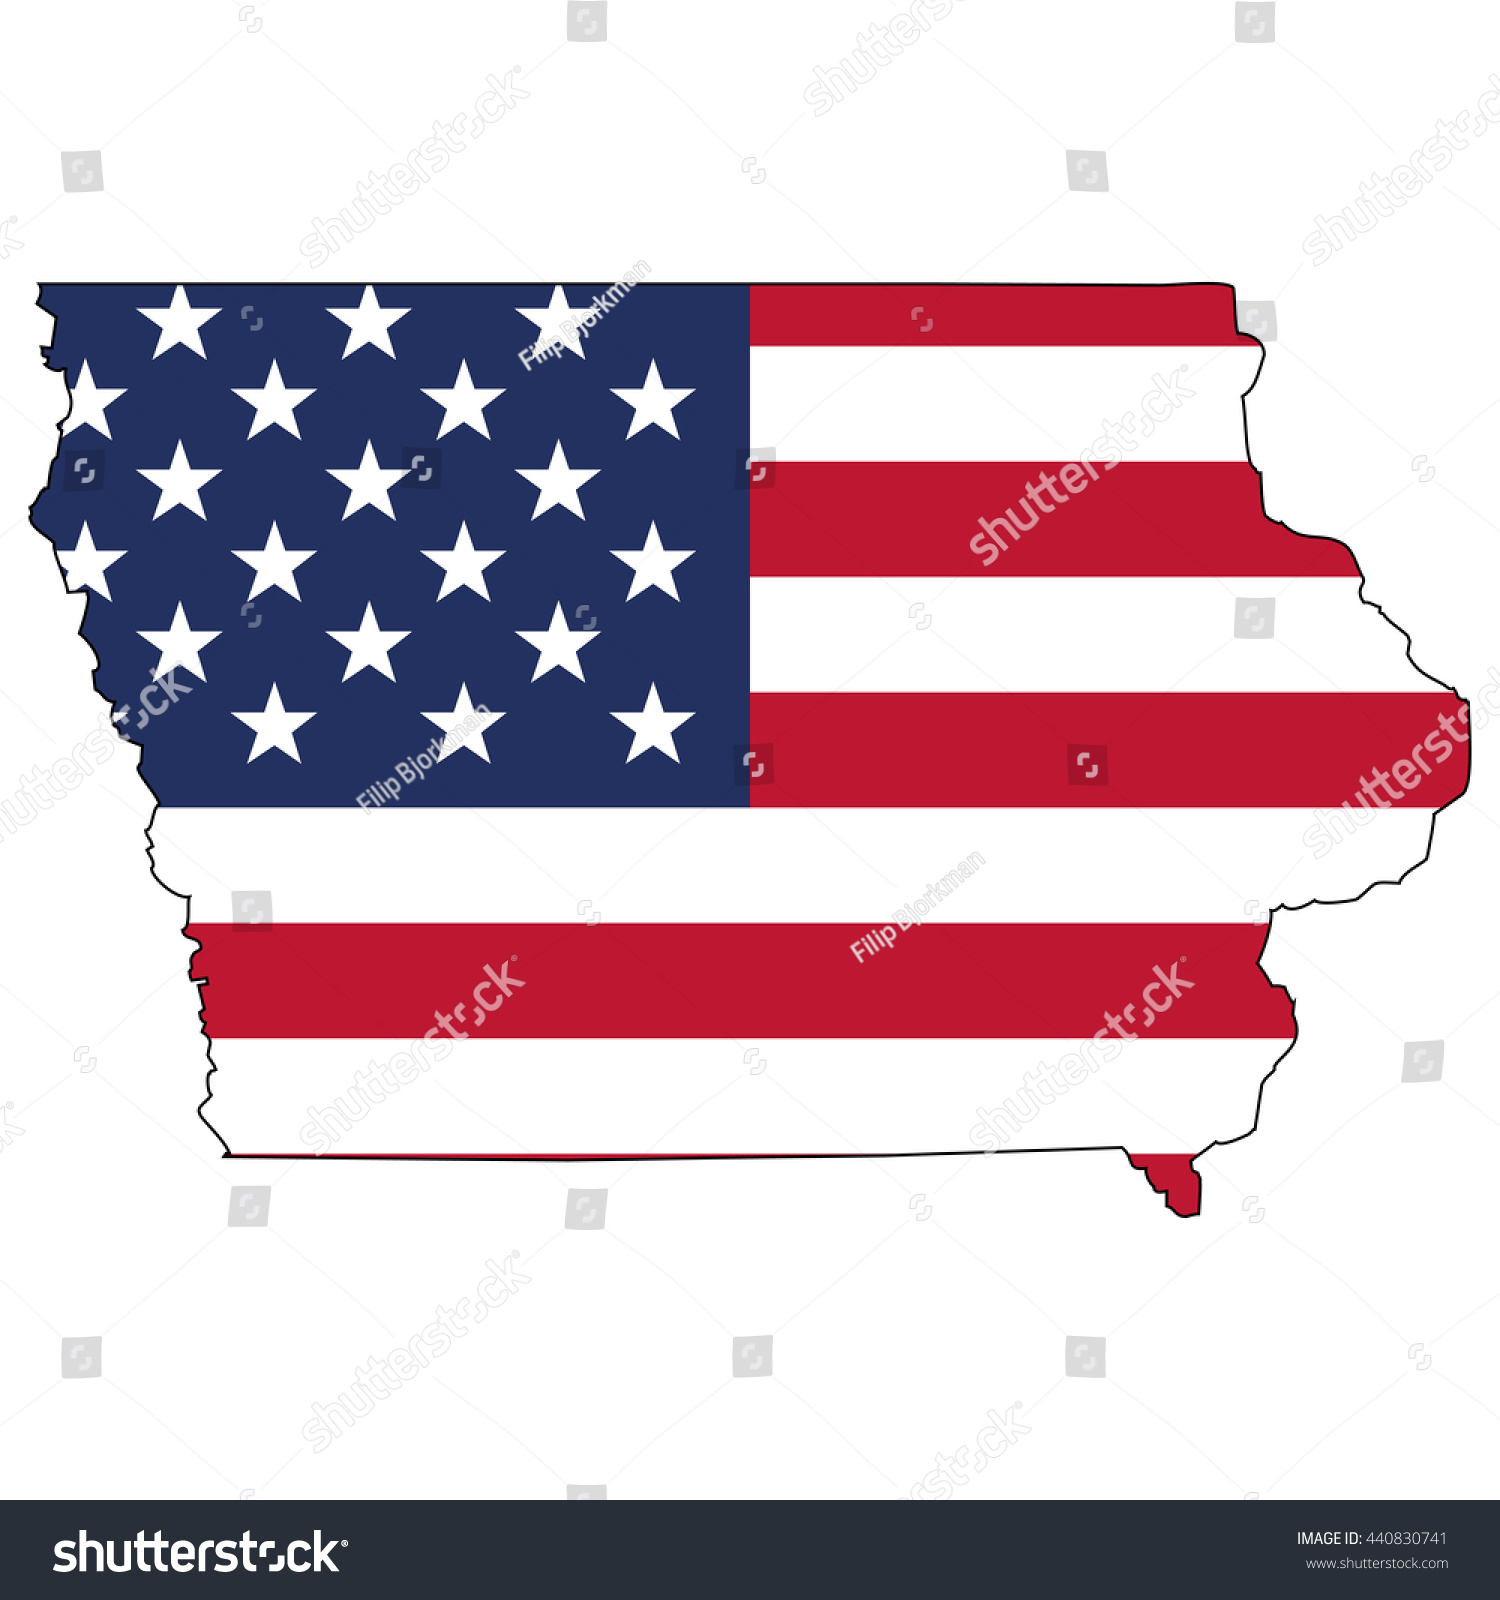 Vector Map Us Flag Inside Iowa Stock Vector  Shutterstock - Us map states iowa